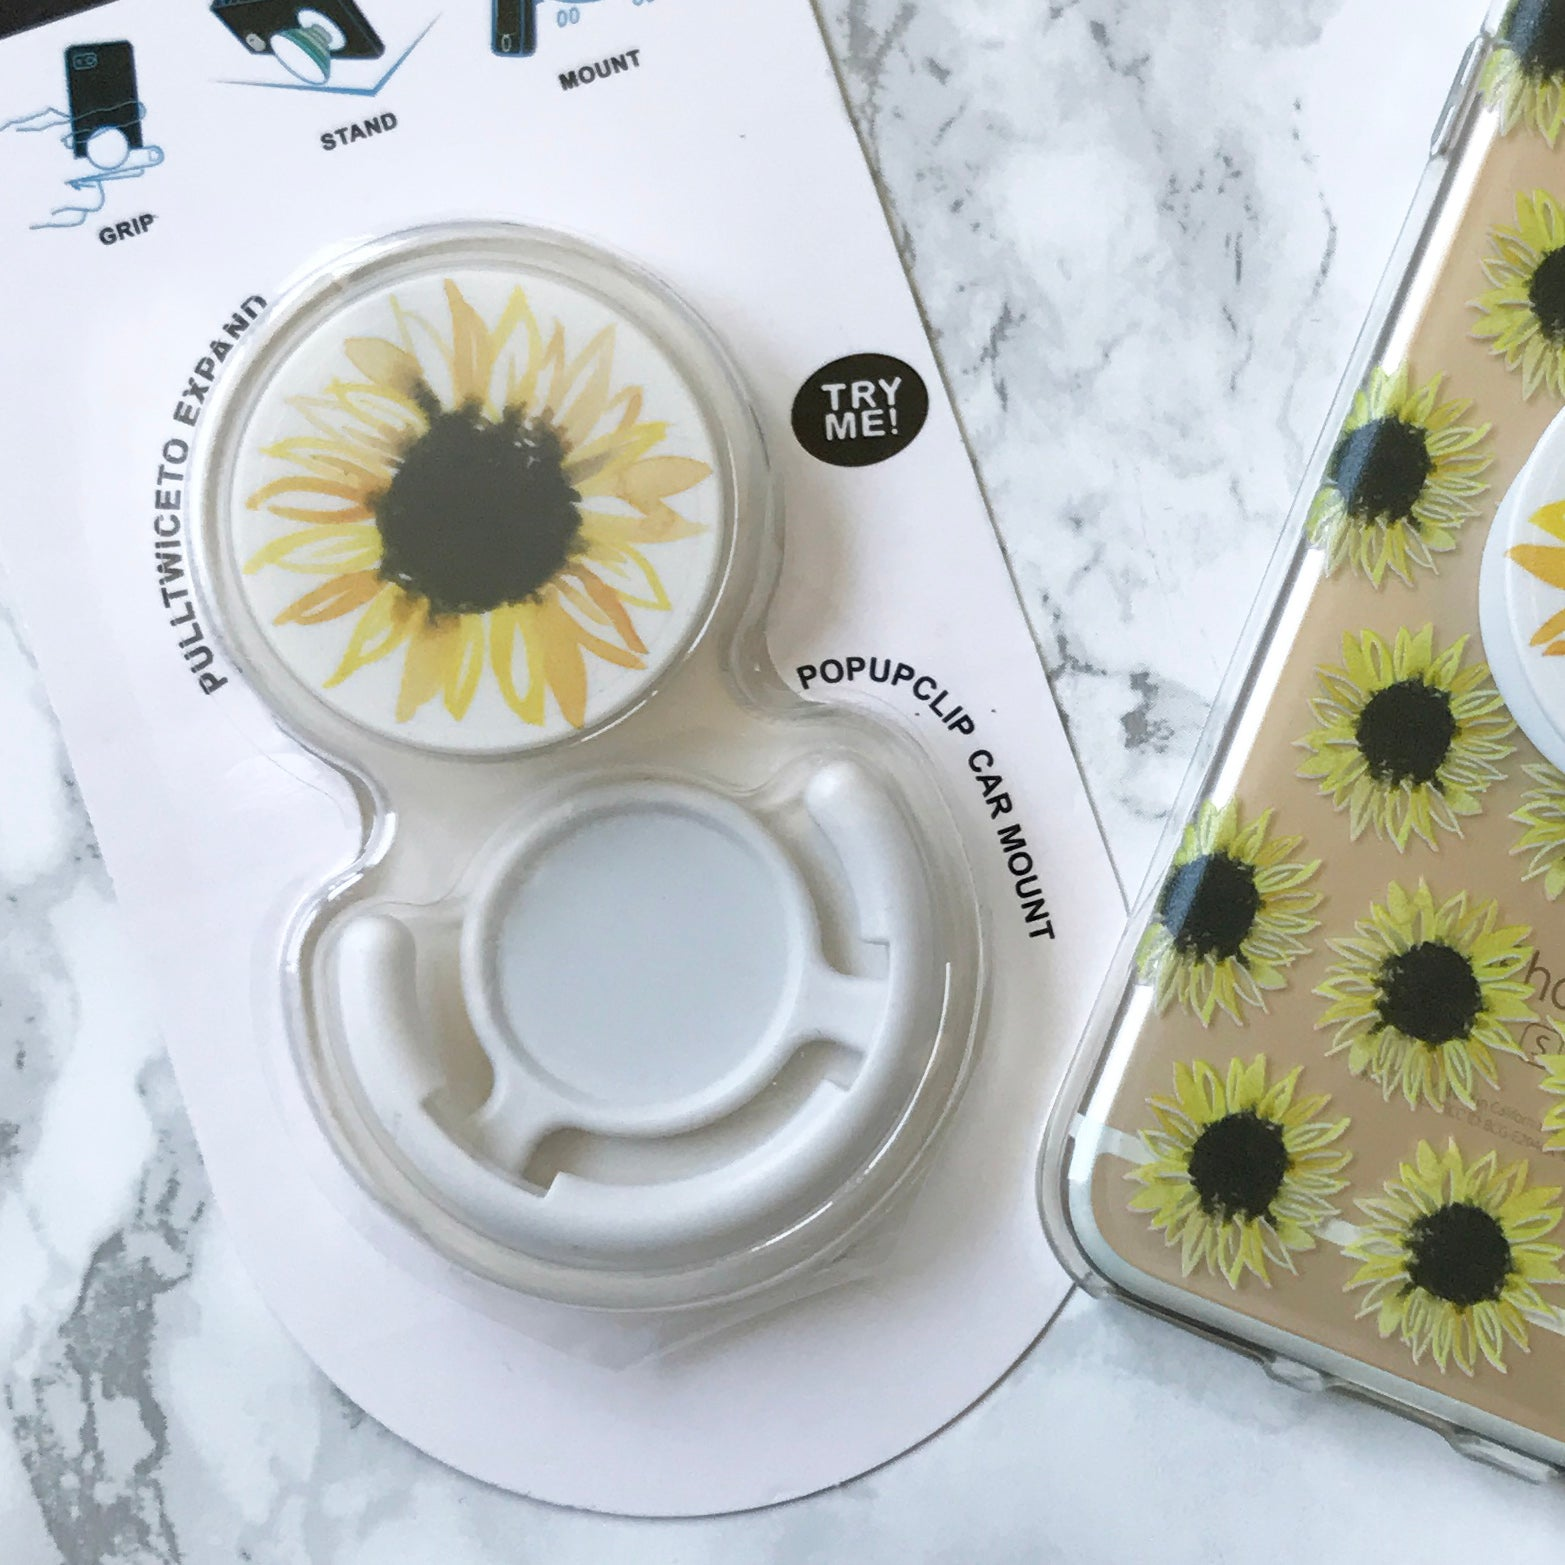 Pop Socket With Sunflower Watercolor Print Includes Car